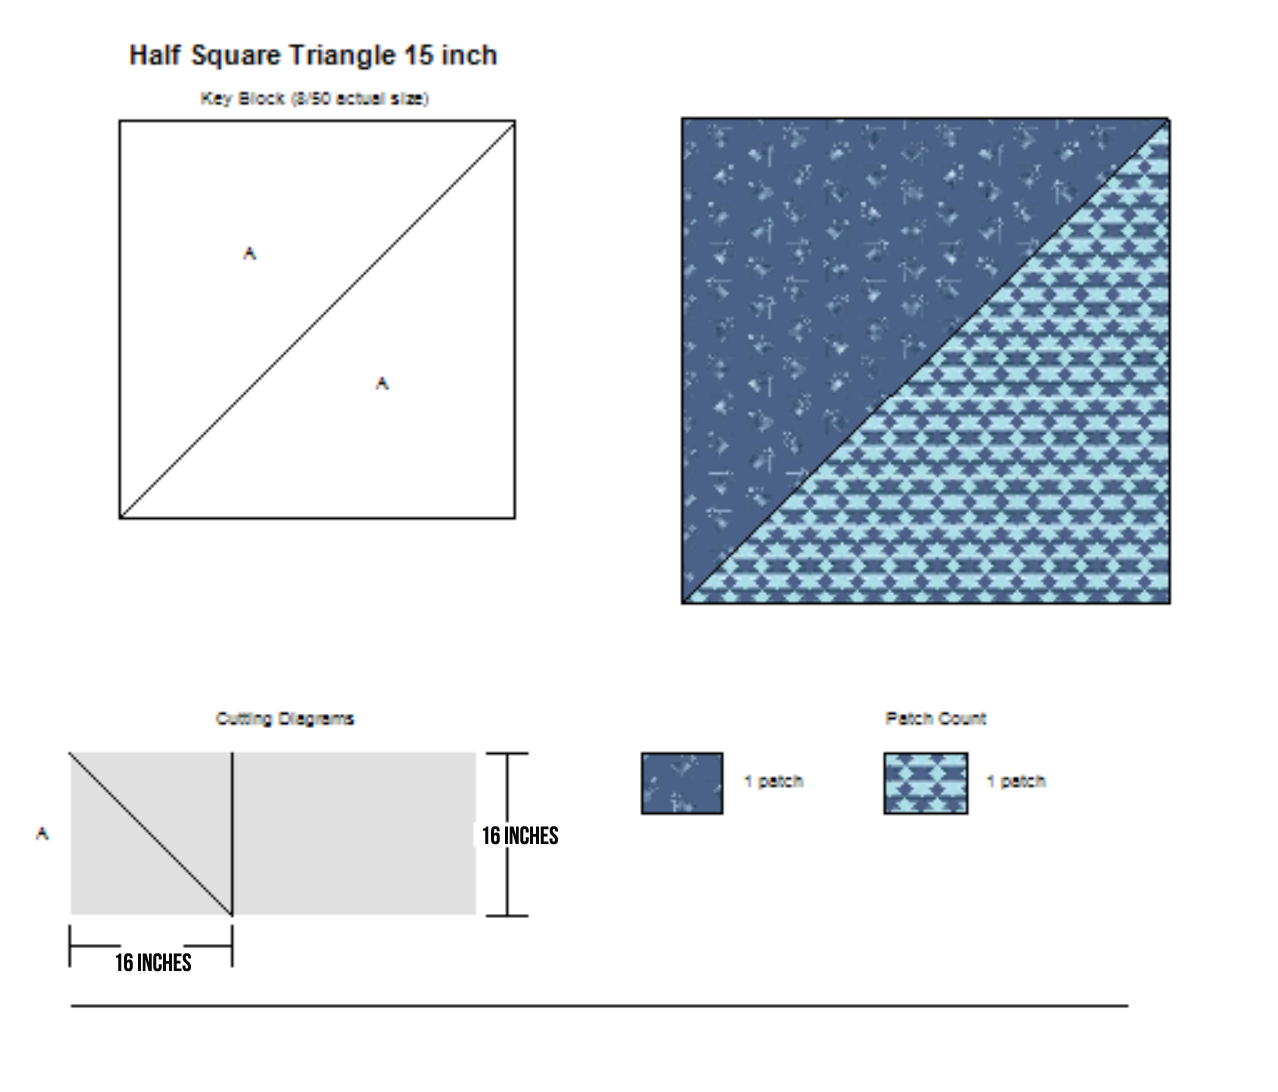 Easy Giant Half Square Triangle Cutting Diagram